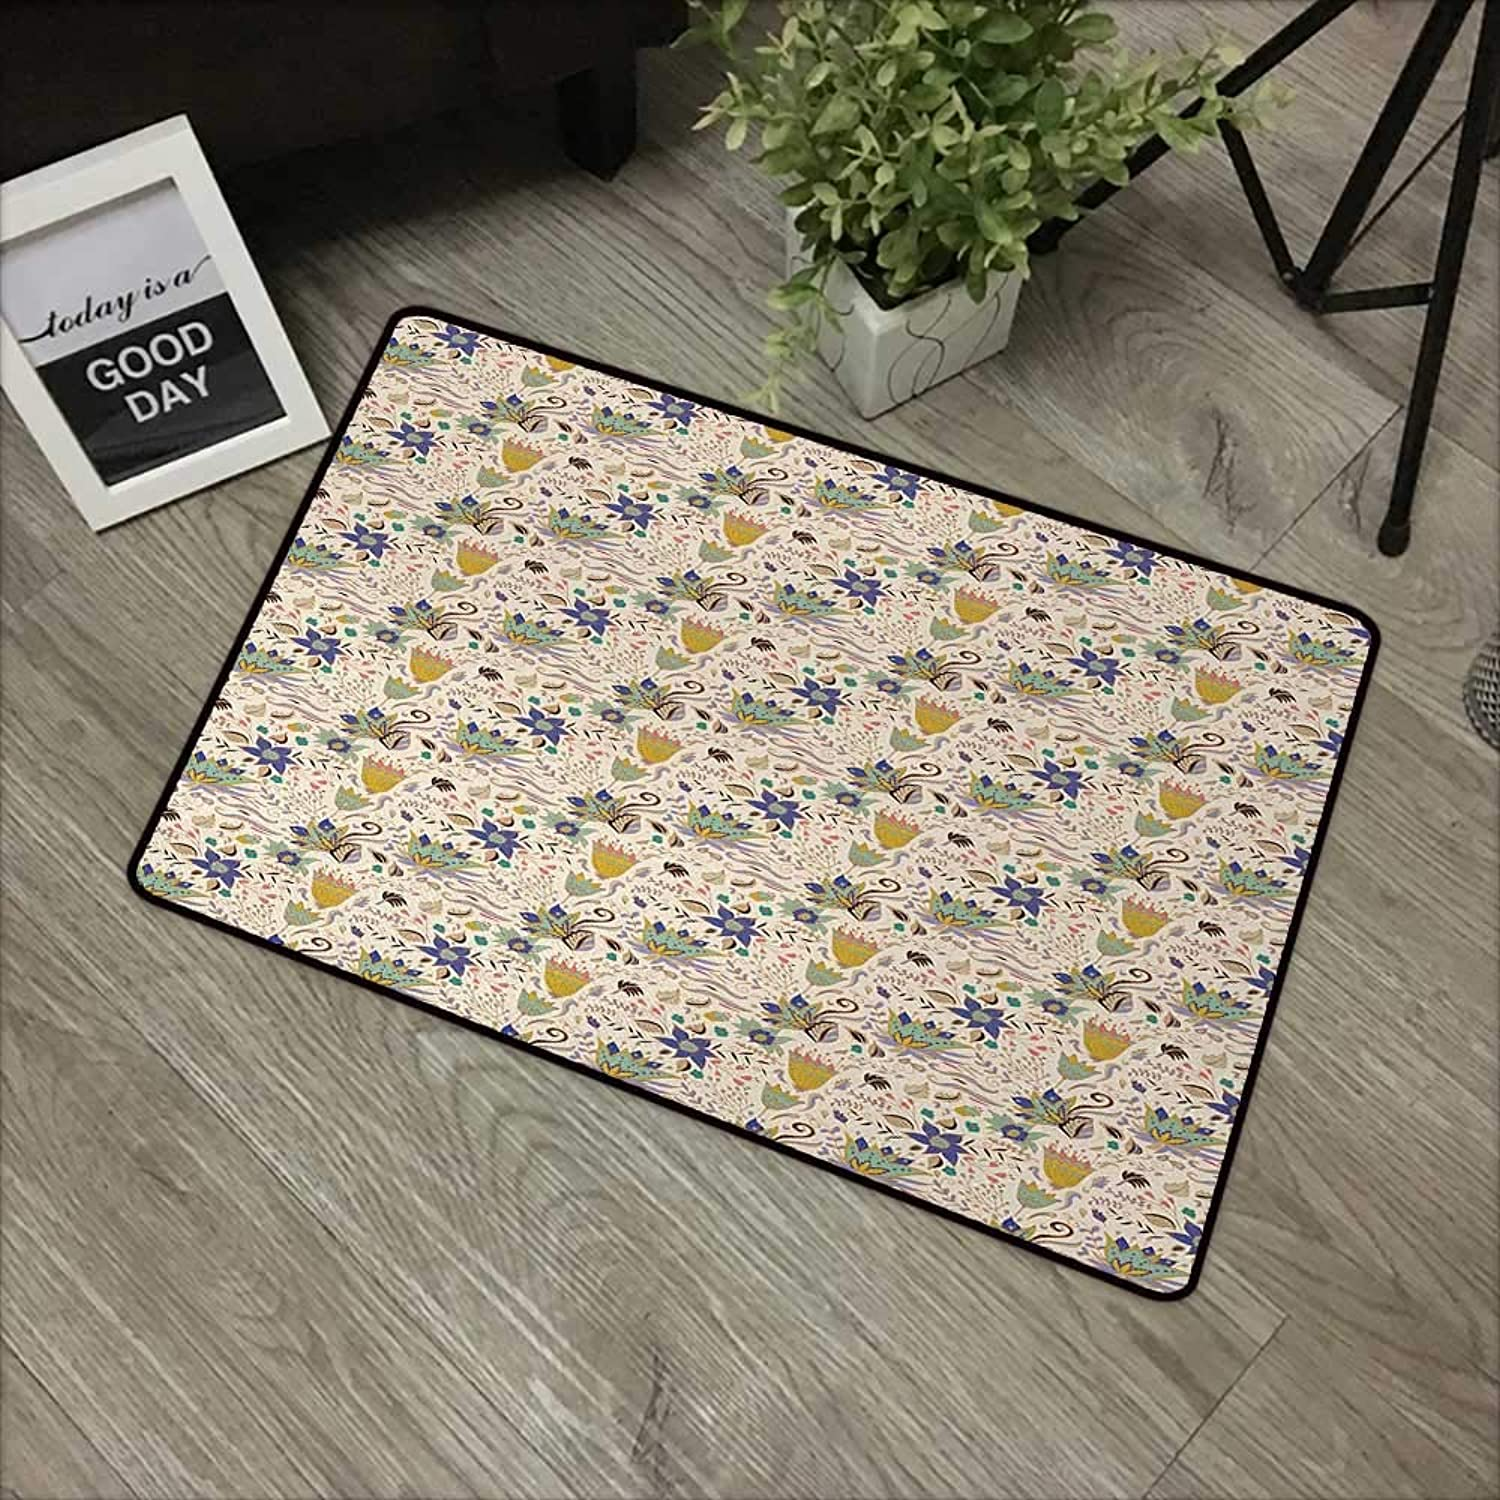 Door mat W35 x L59 INCH Botanical,Abstract and Artistic Floral Pattern on Pastel Background Romantic Summer Garden,Multicolor Non-Slip Door Mat Carpet